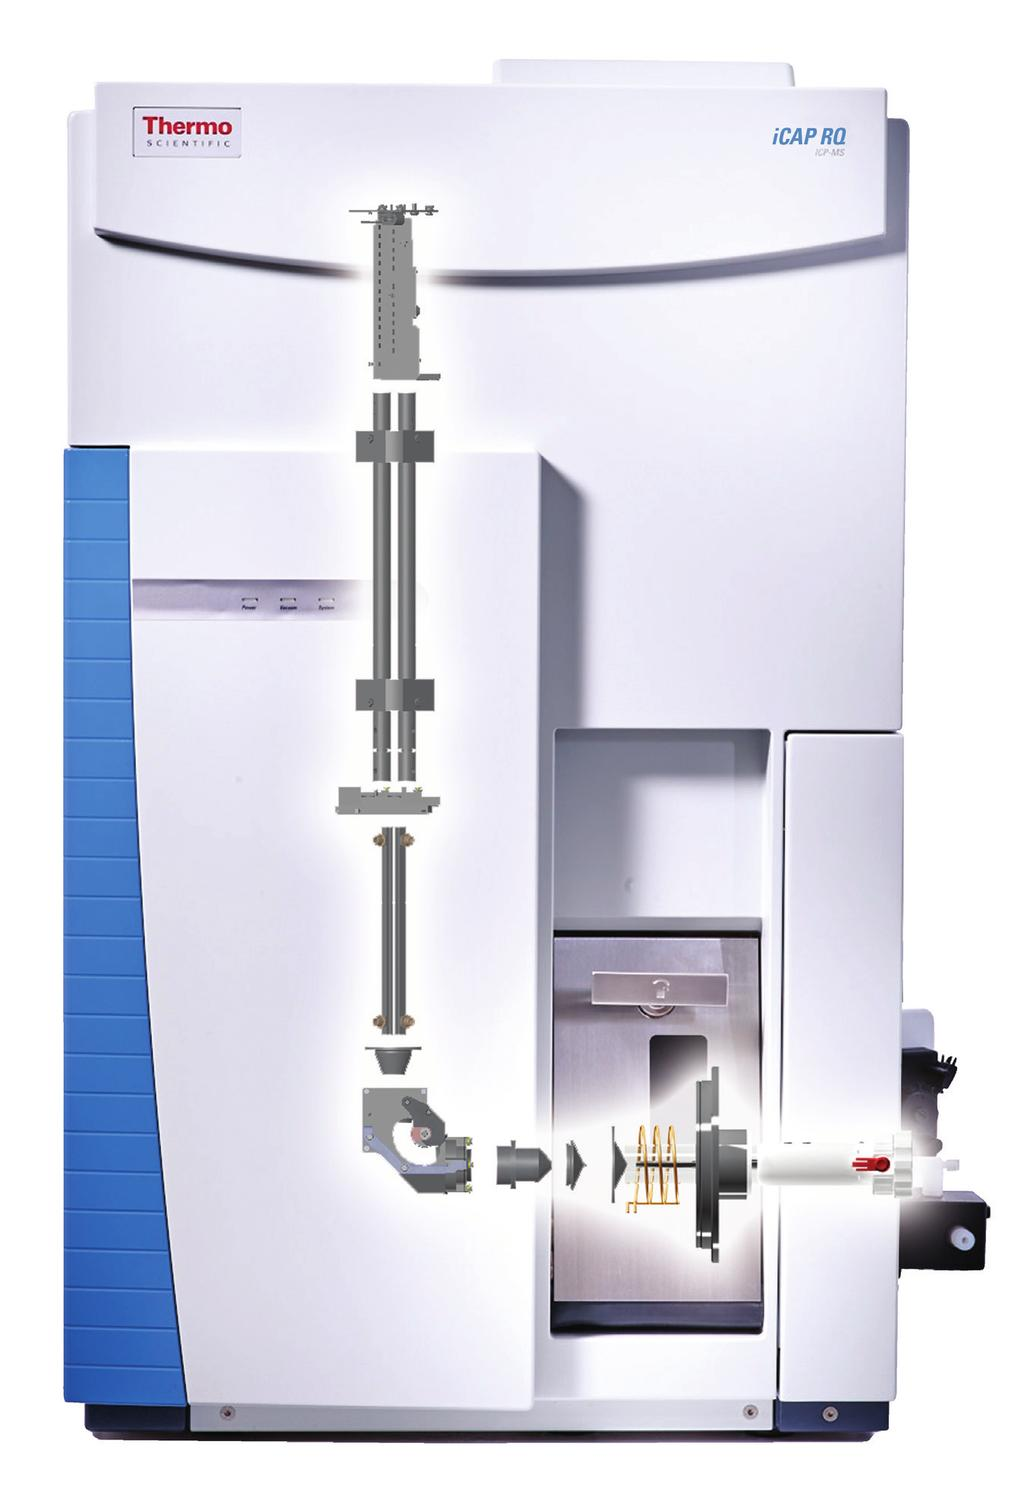 Thermo Scientific icap RQ ICP-MS  Simplicity, productivity and